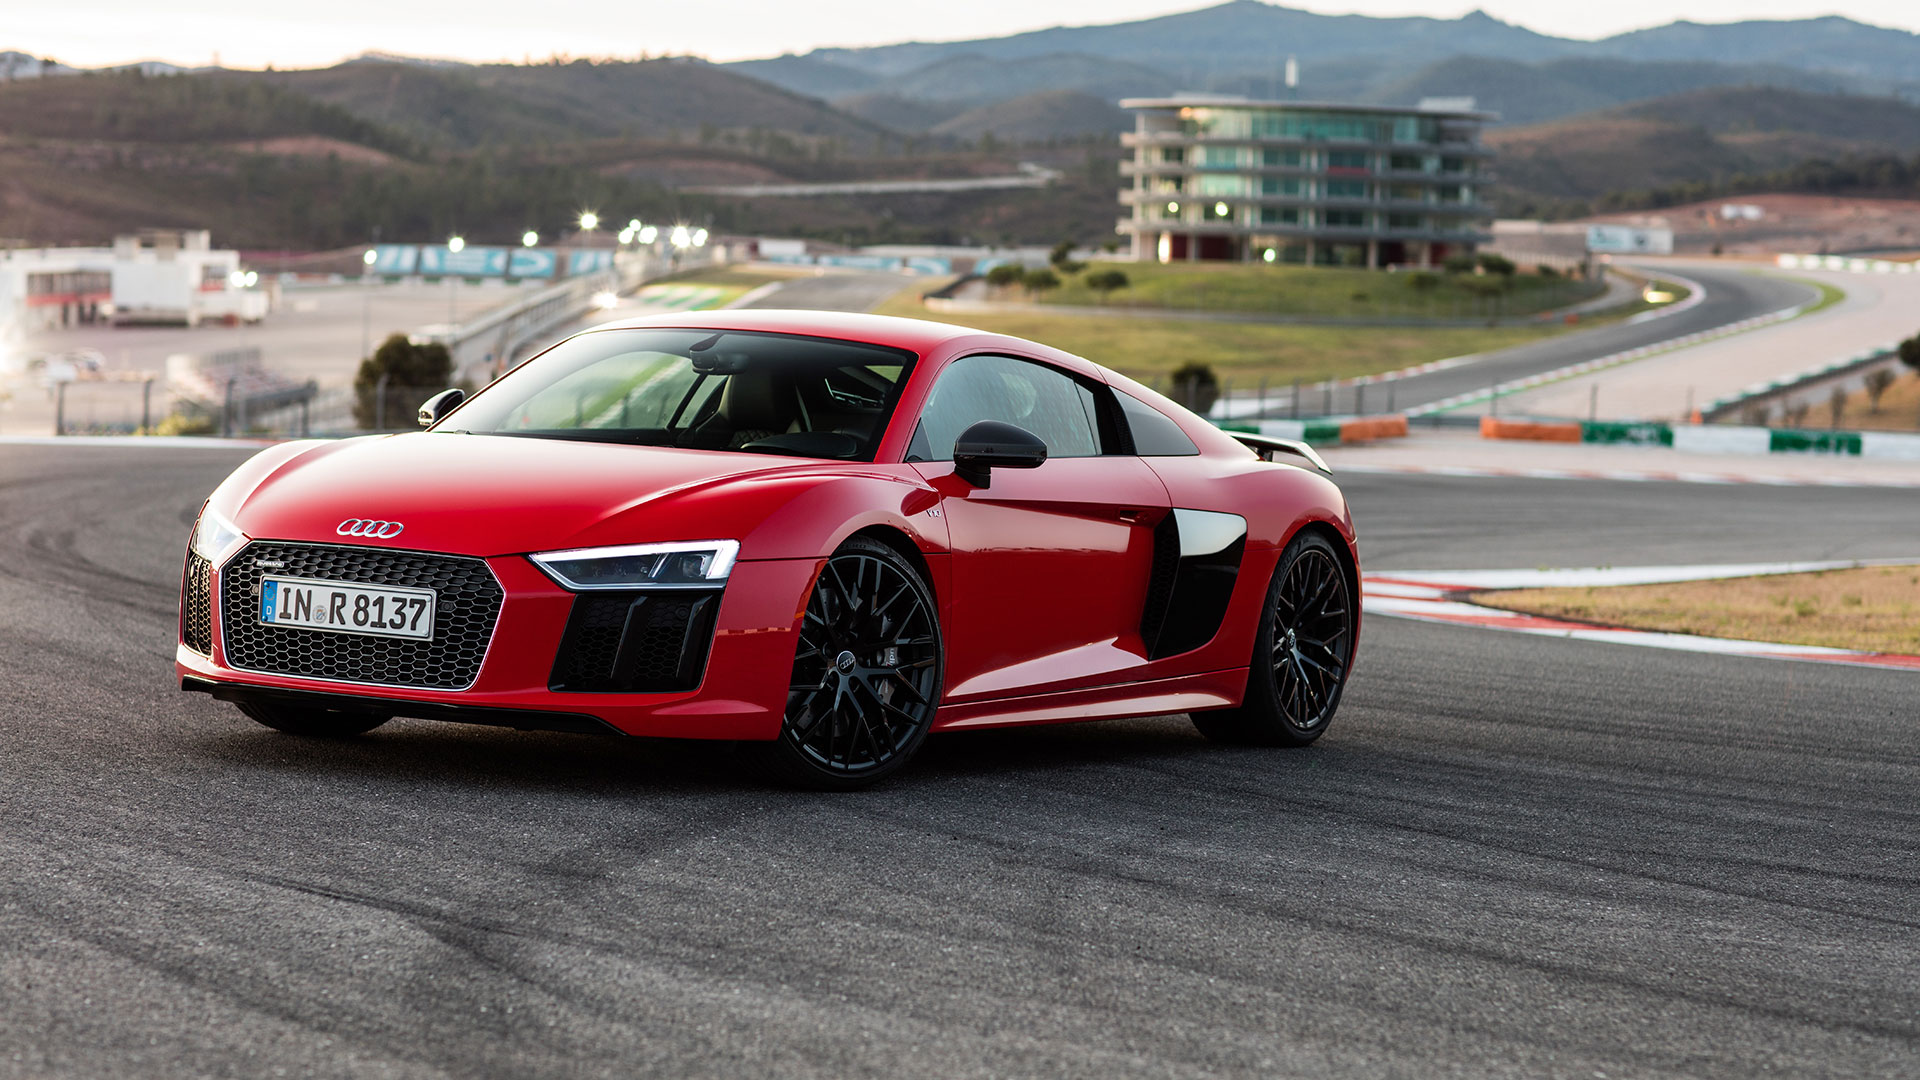 Audi R8: 3.5 seconds